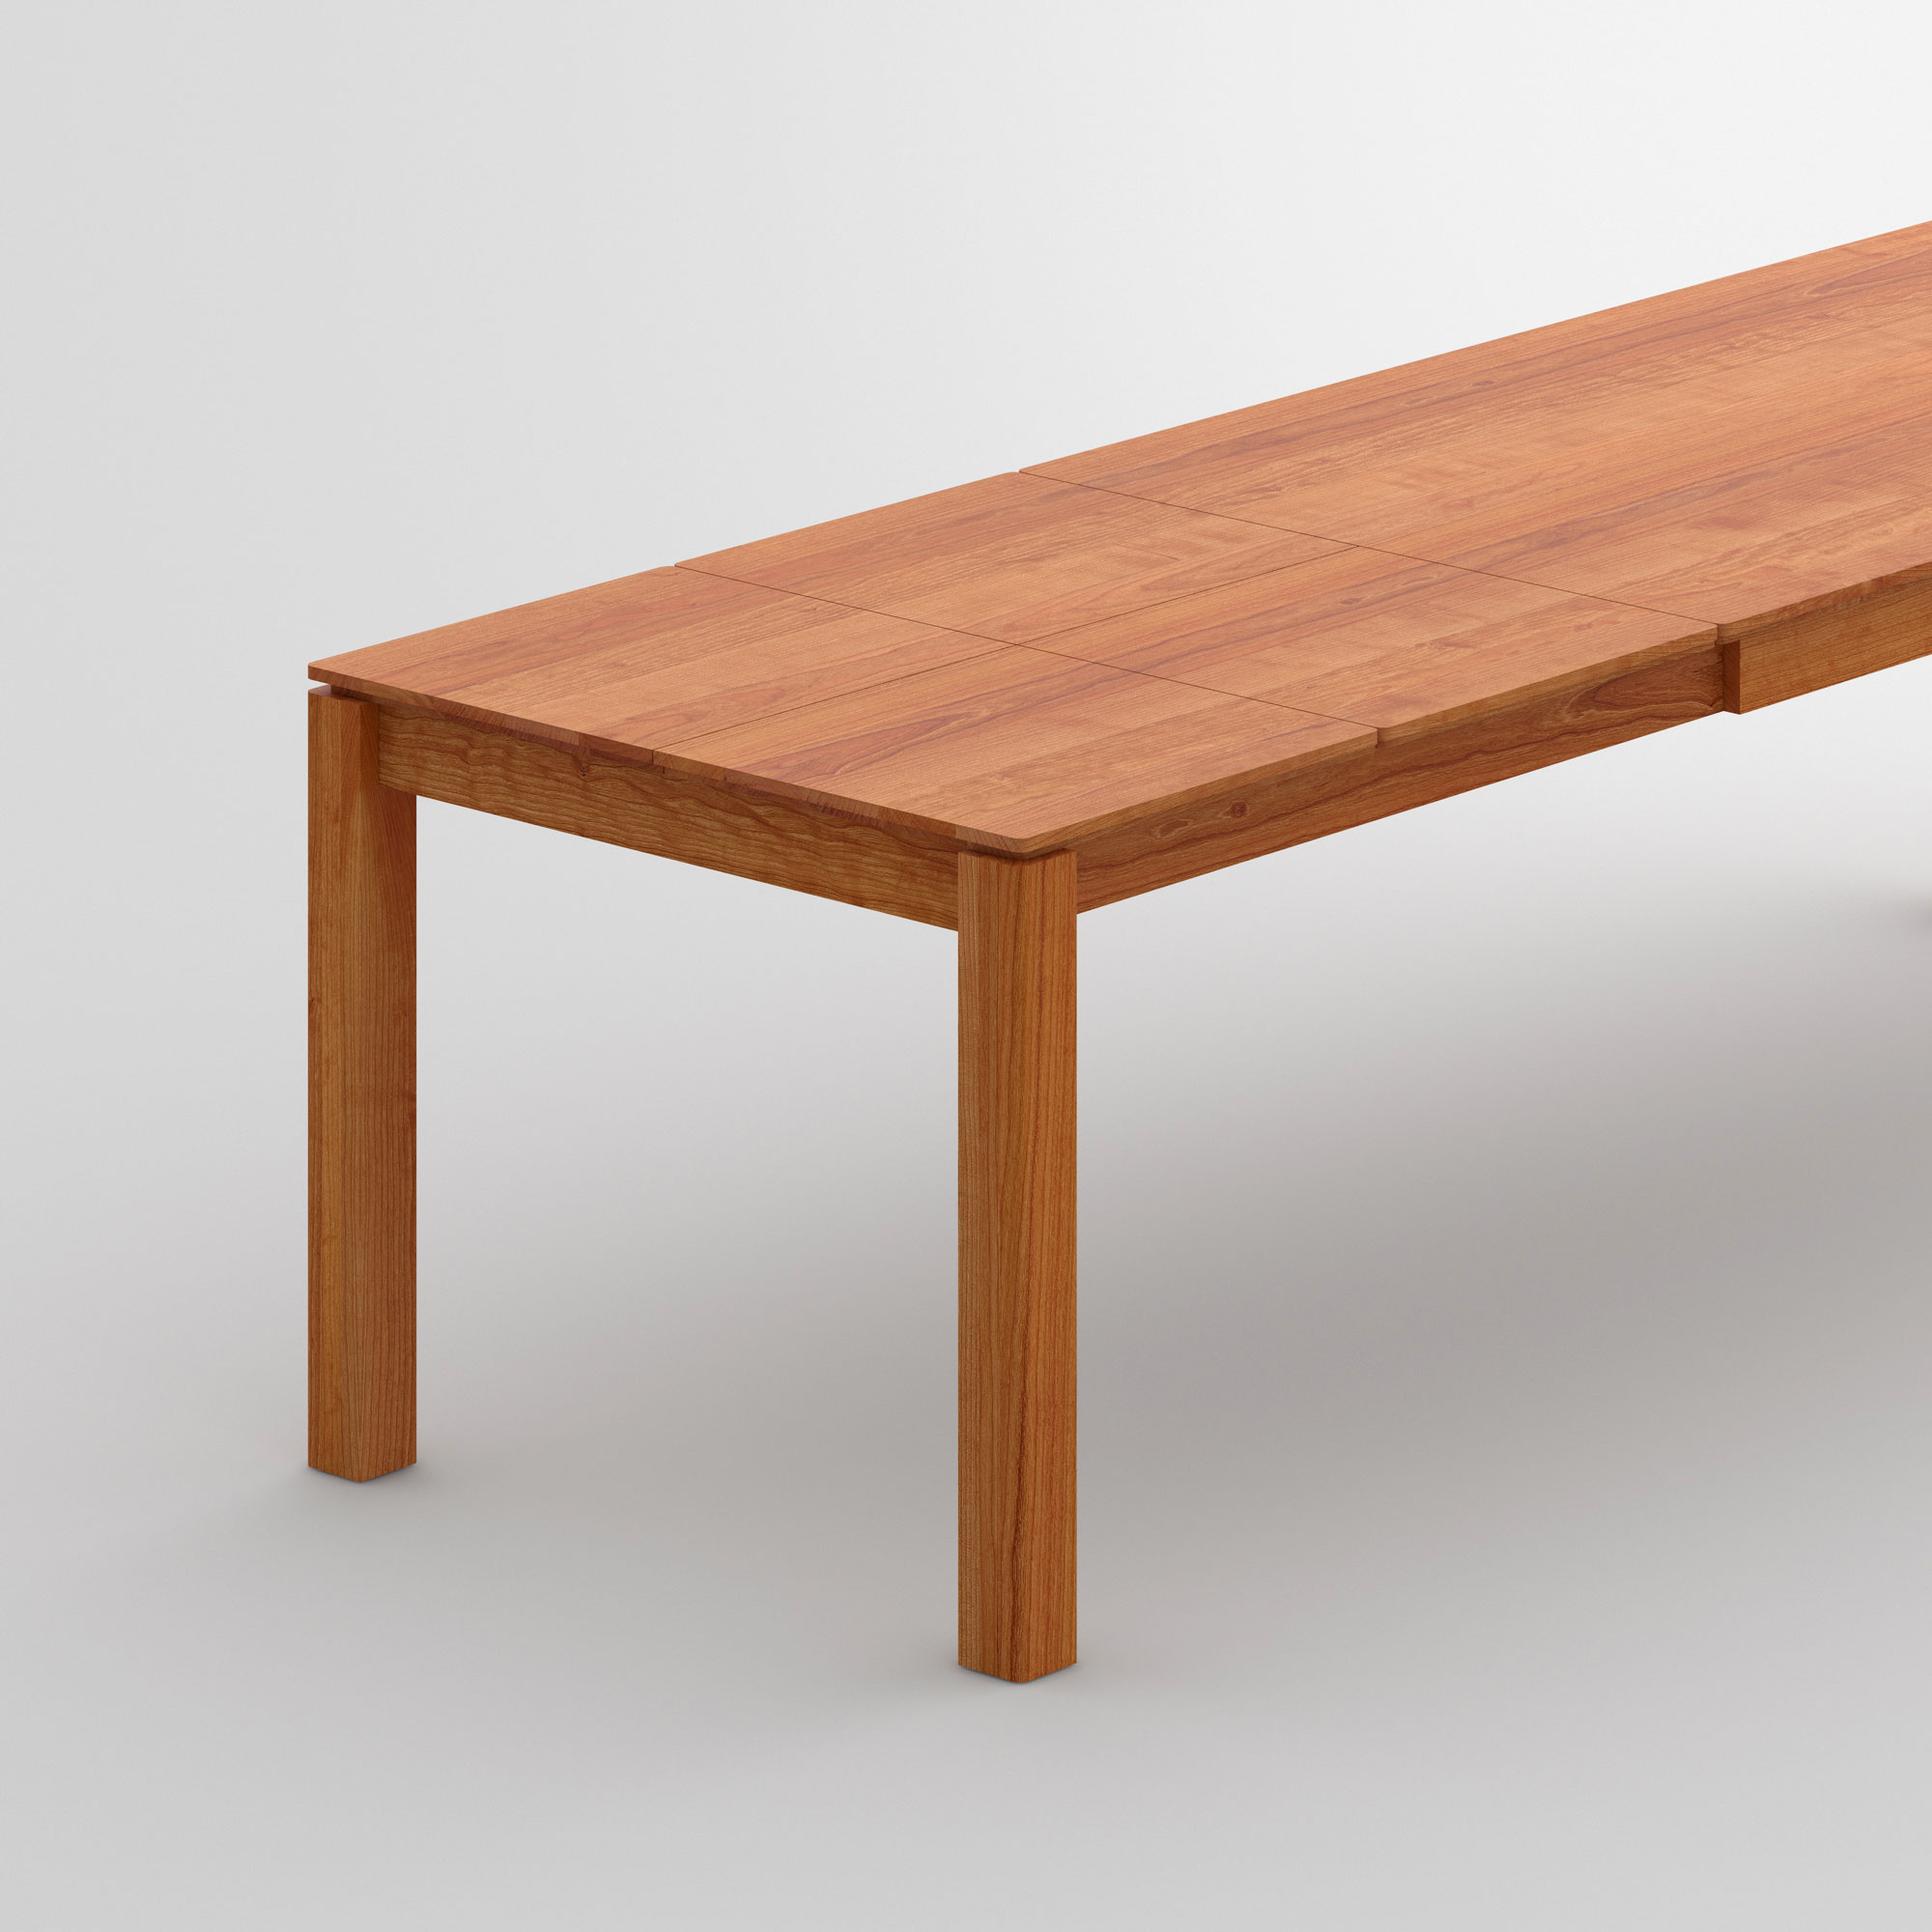 Dining Table Butterfly-System VERSO BUTTERFLY cam2 custom made in solid wood by vitamin design